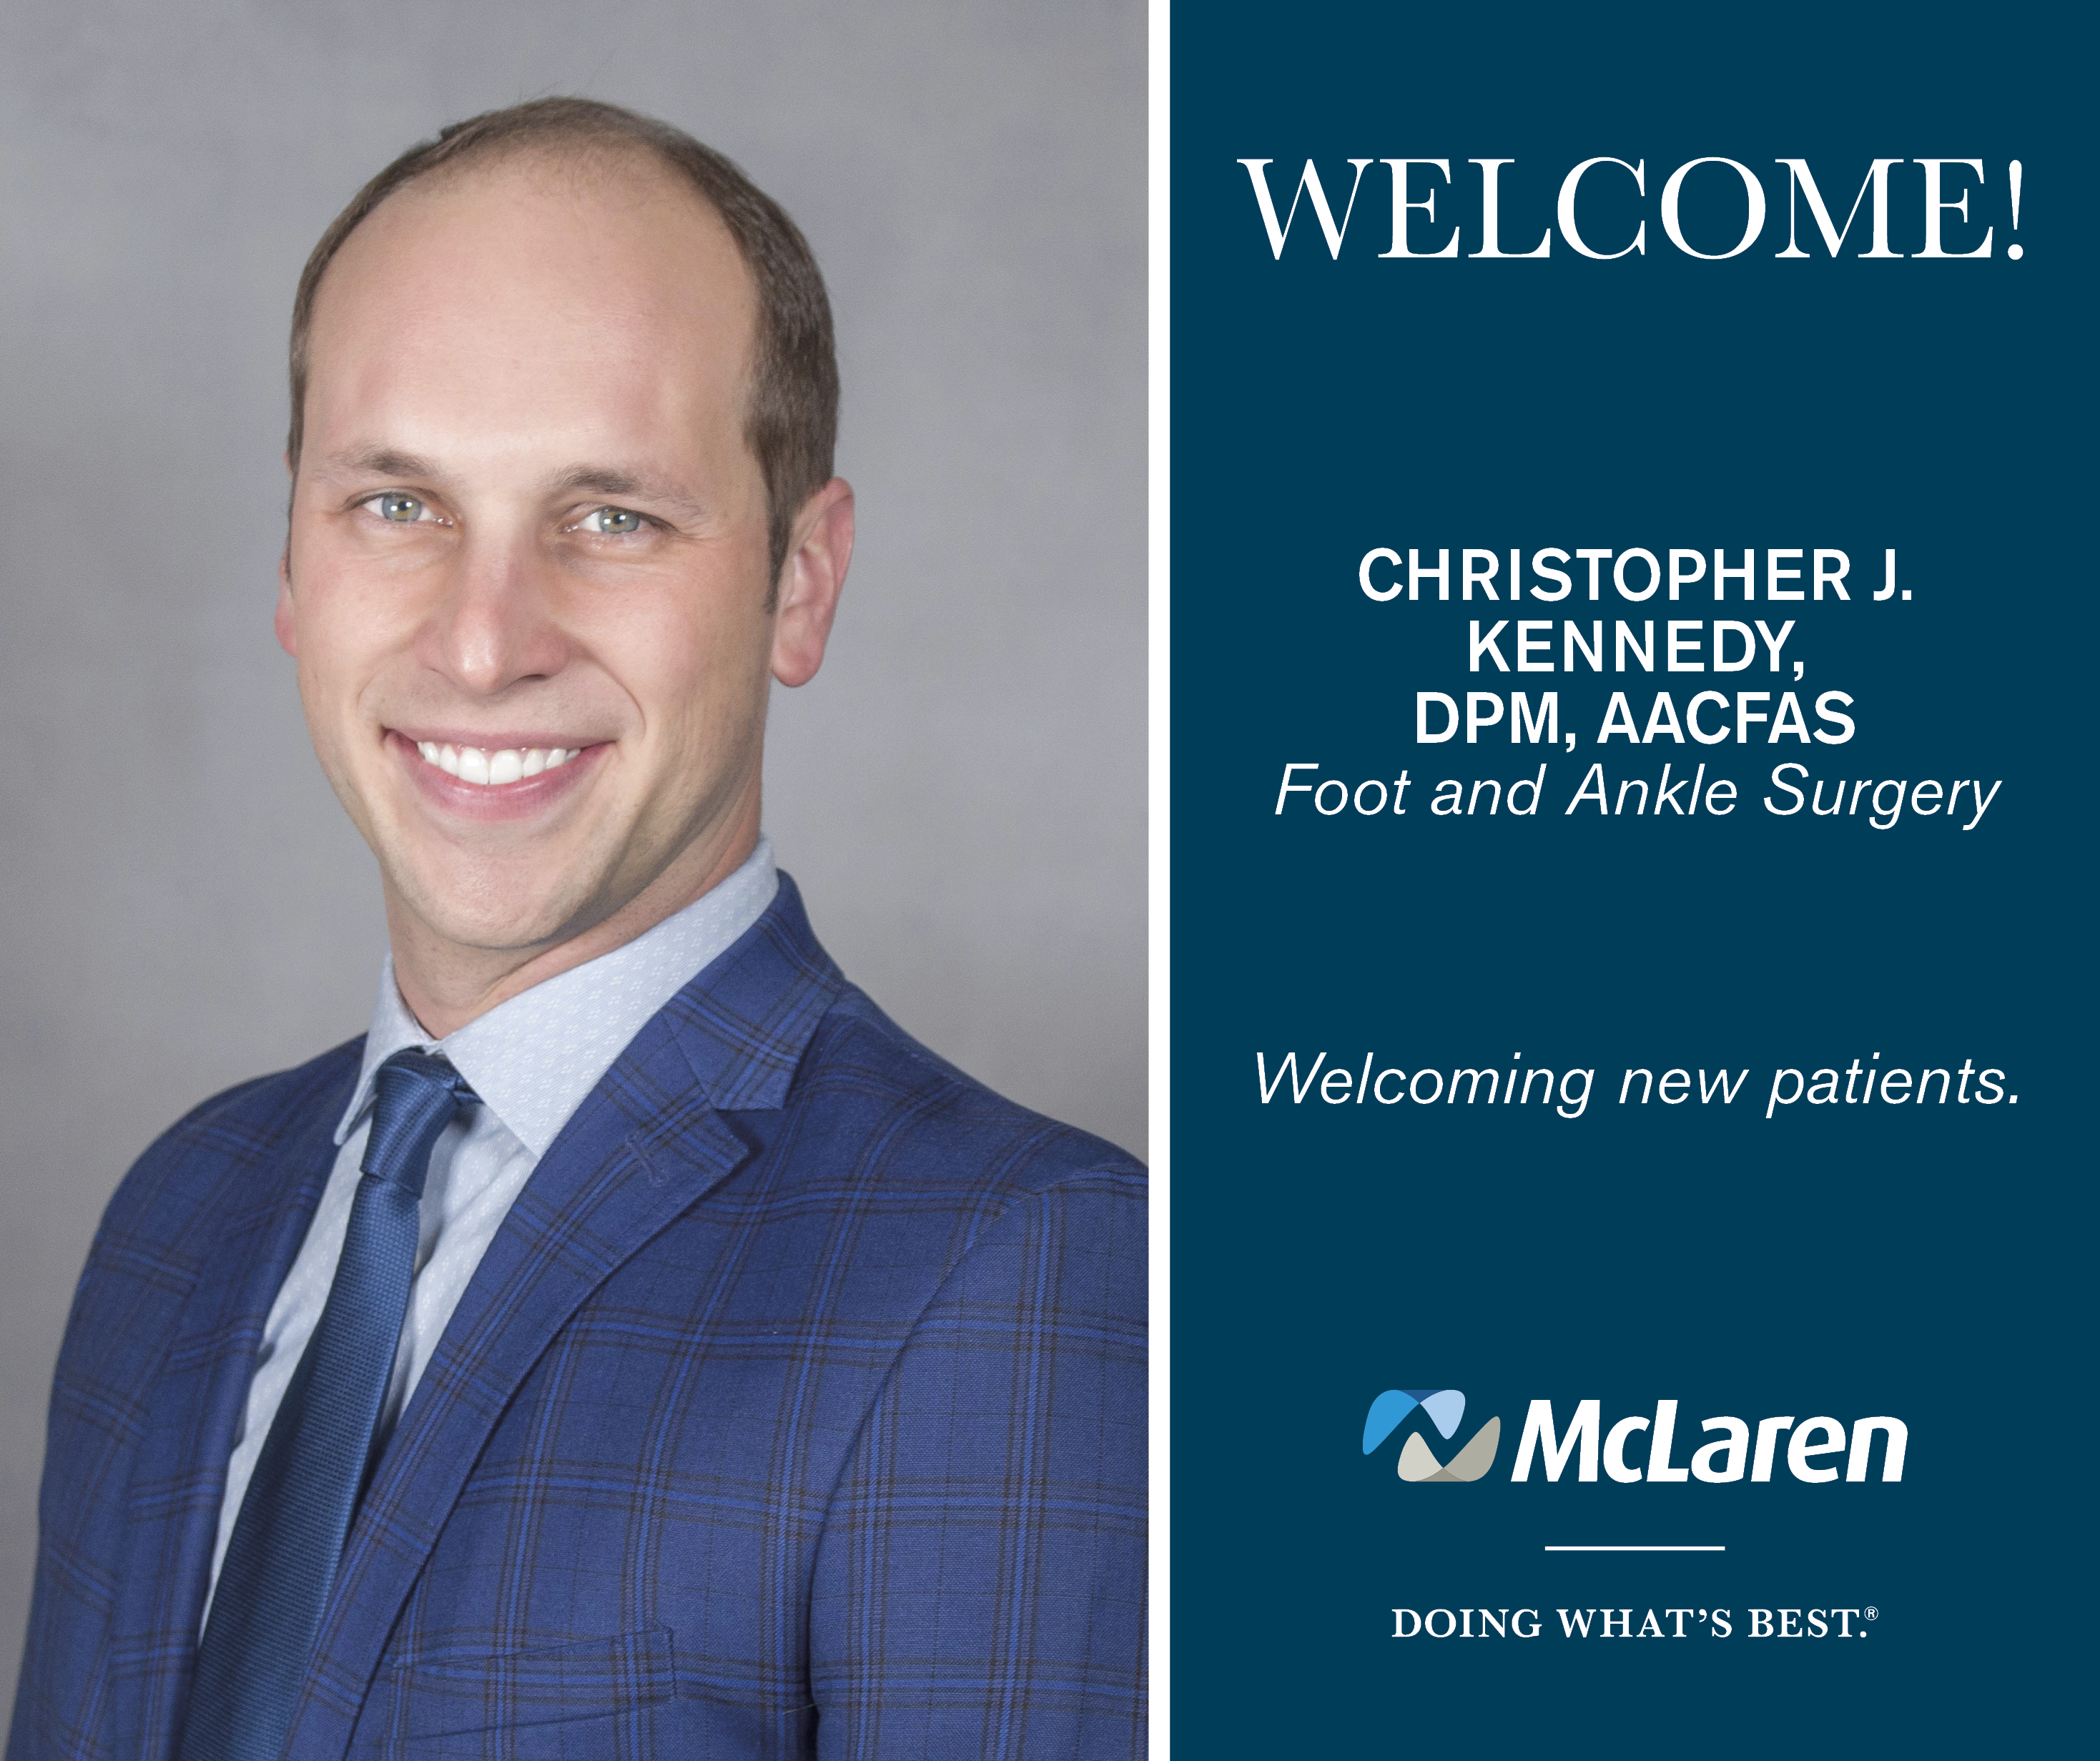 Podiatric Surgeon Joins New Orthopedic Clinic